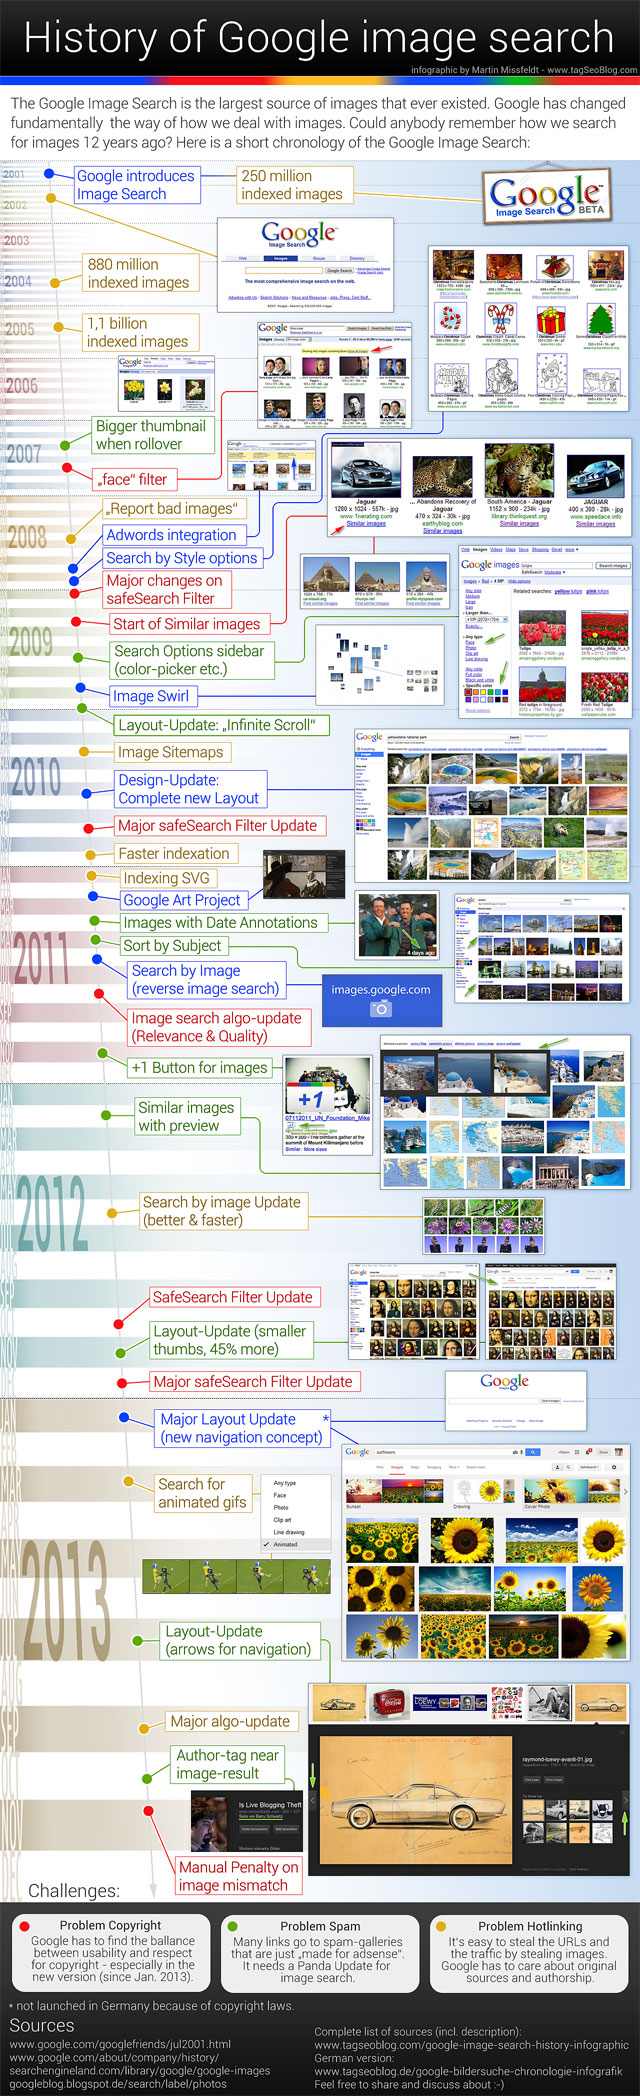 History of Google Image search (Infographic)